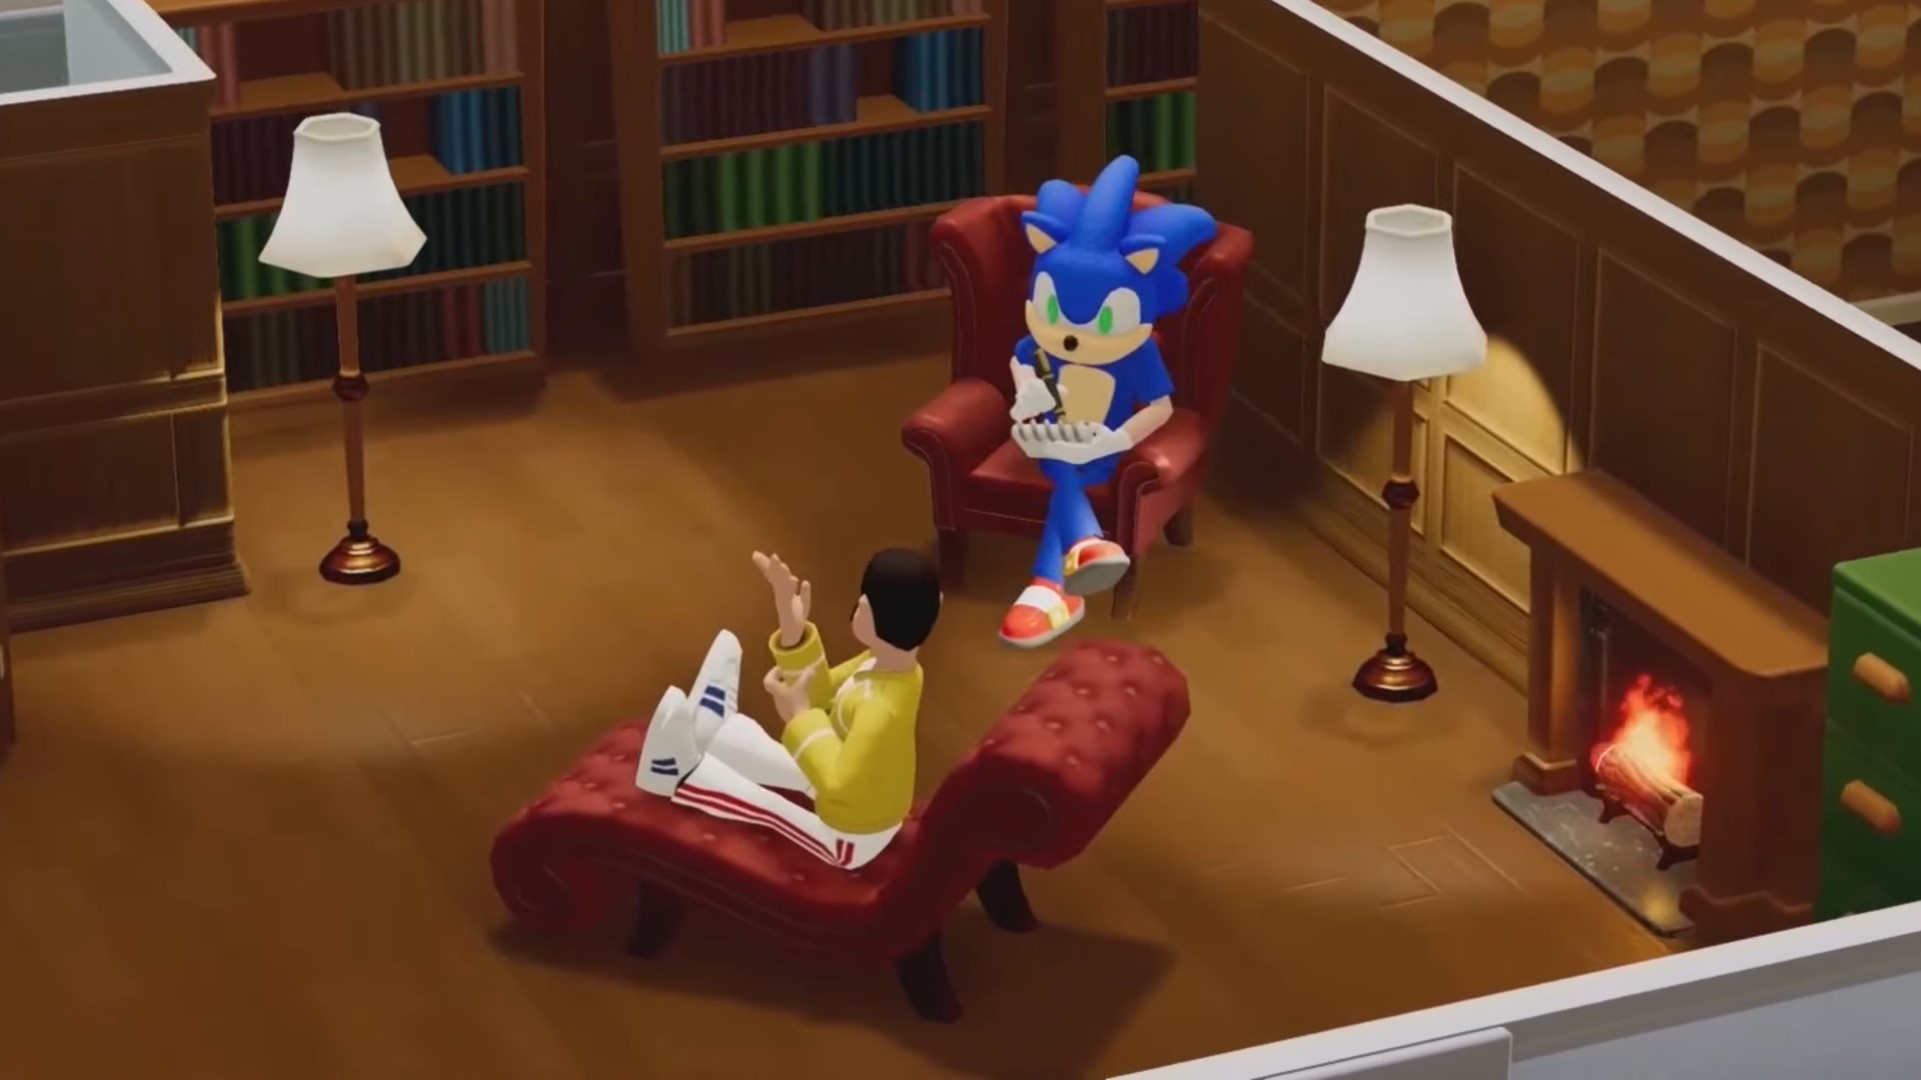 Sonic the Hedgehog is Freddie Mercury's therapist in Two Point Hospital now